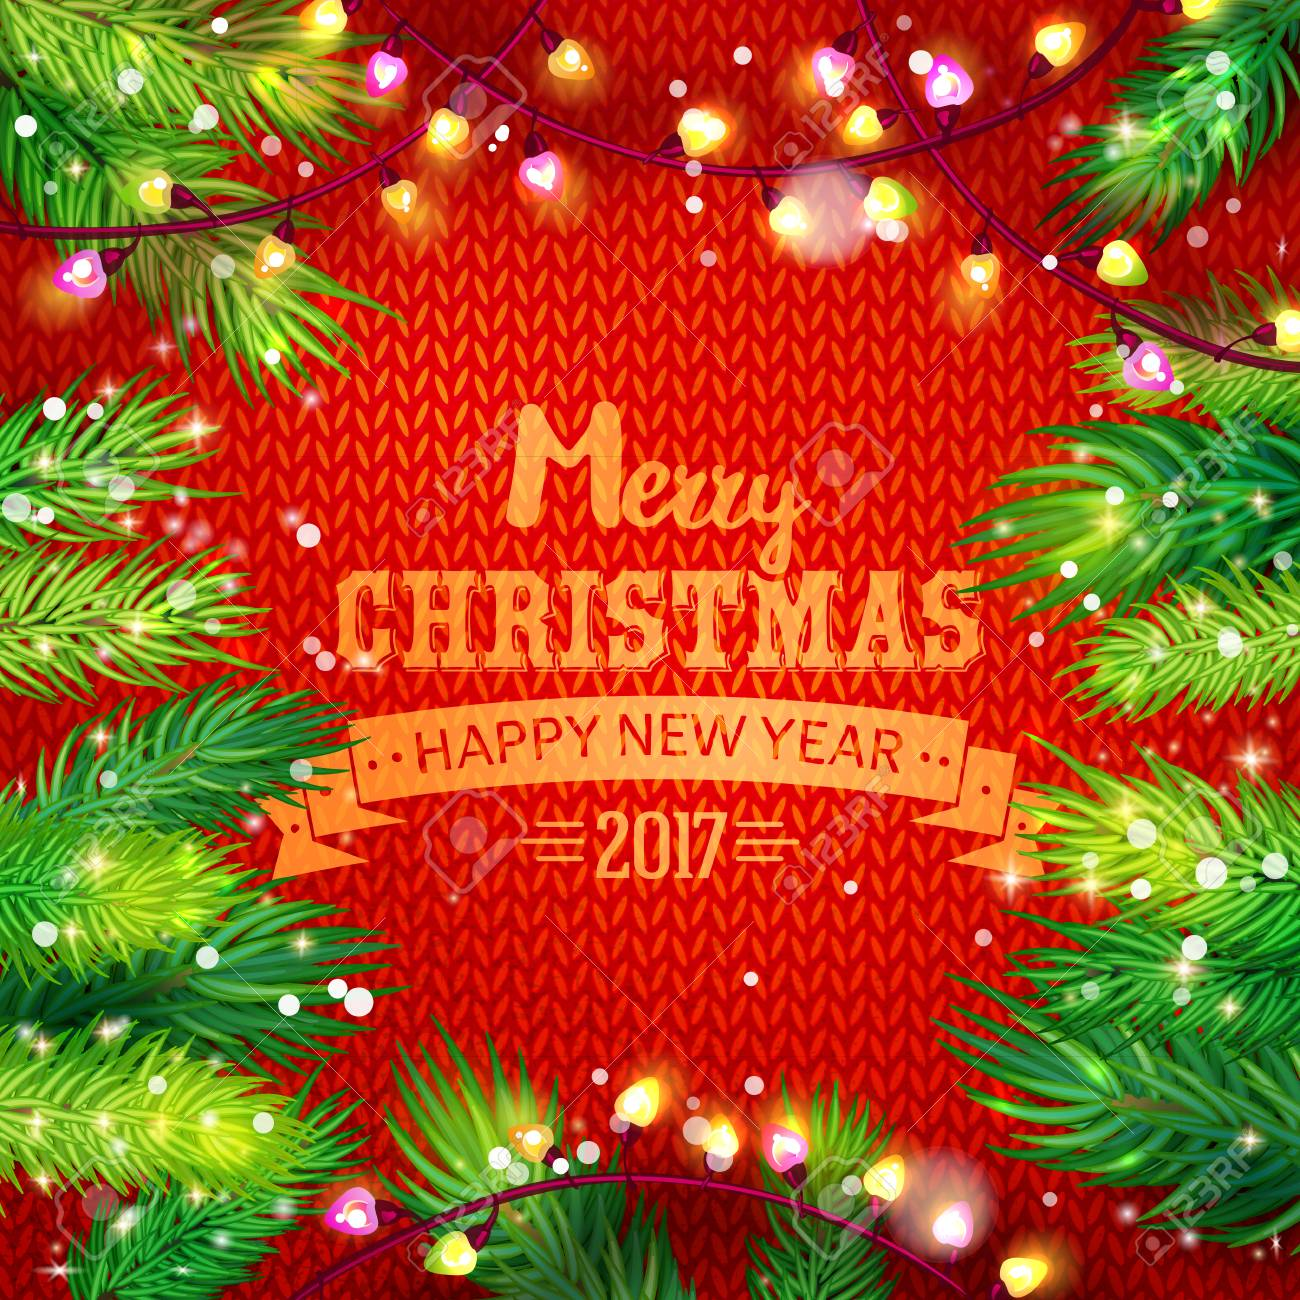 Wish You A Merry Christmas And Happy New Year Card With Fir And ...